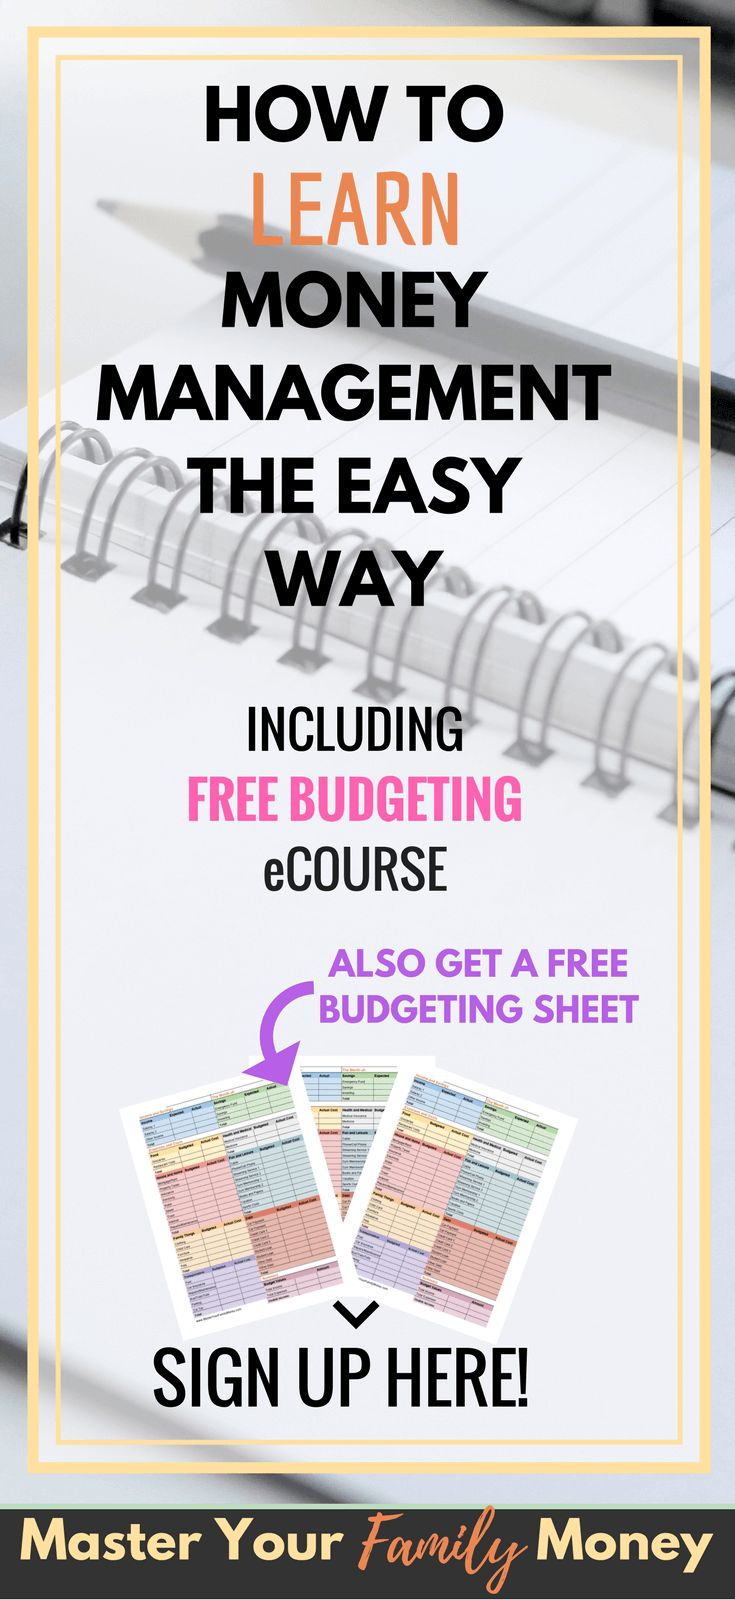 If you need to learn money management this page is a good resource for you with a list of articles that can get you started. Check it out now or pin it for later!